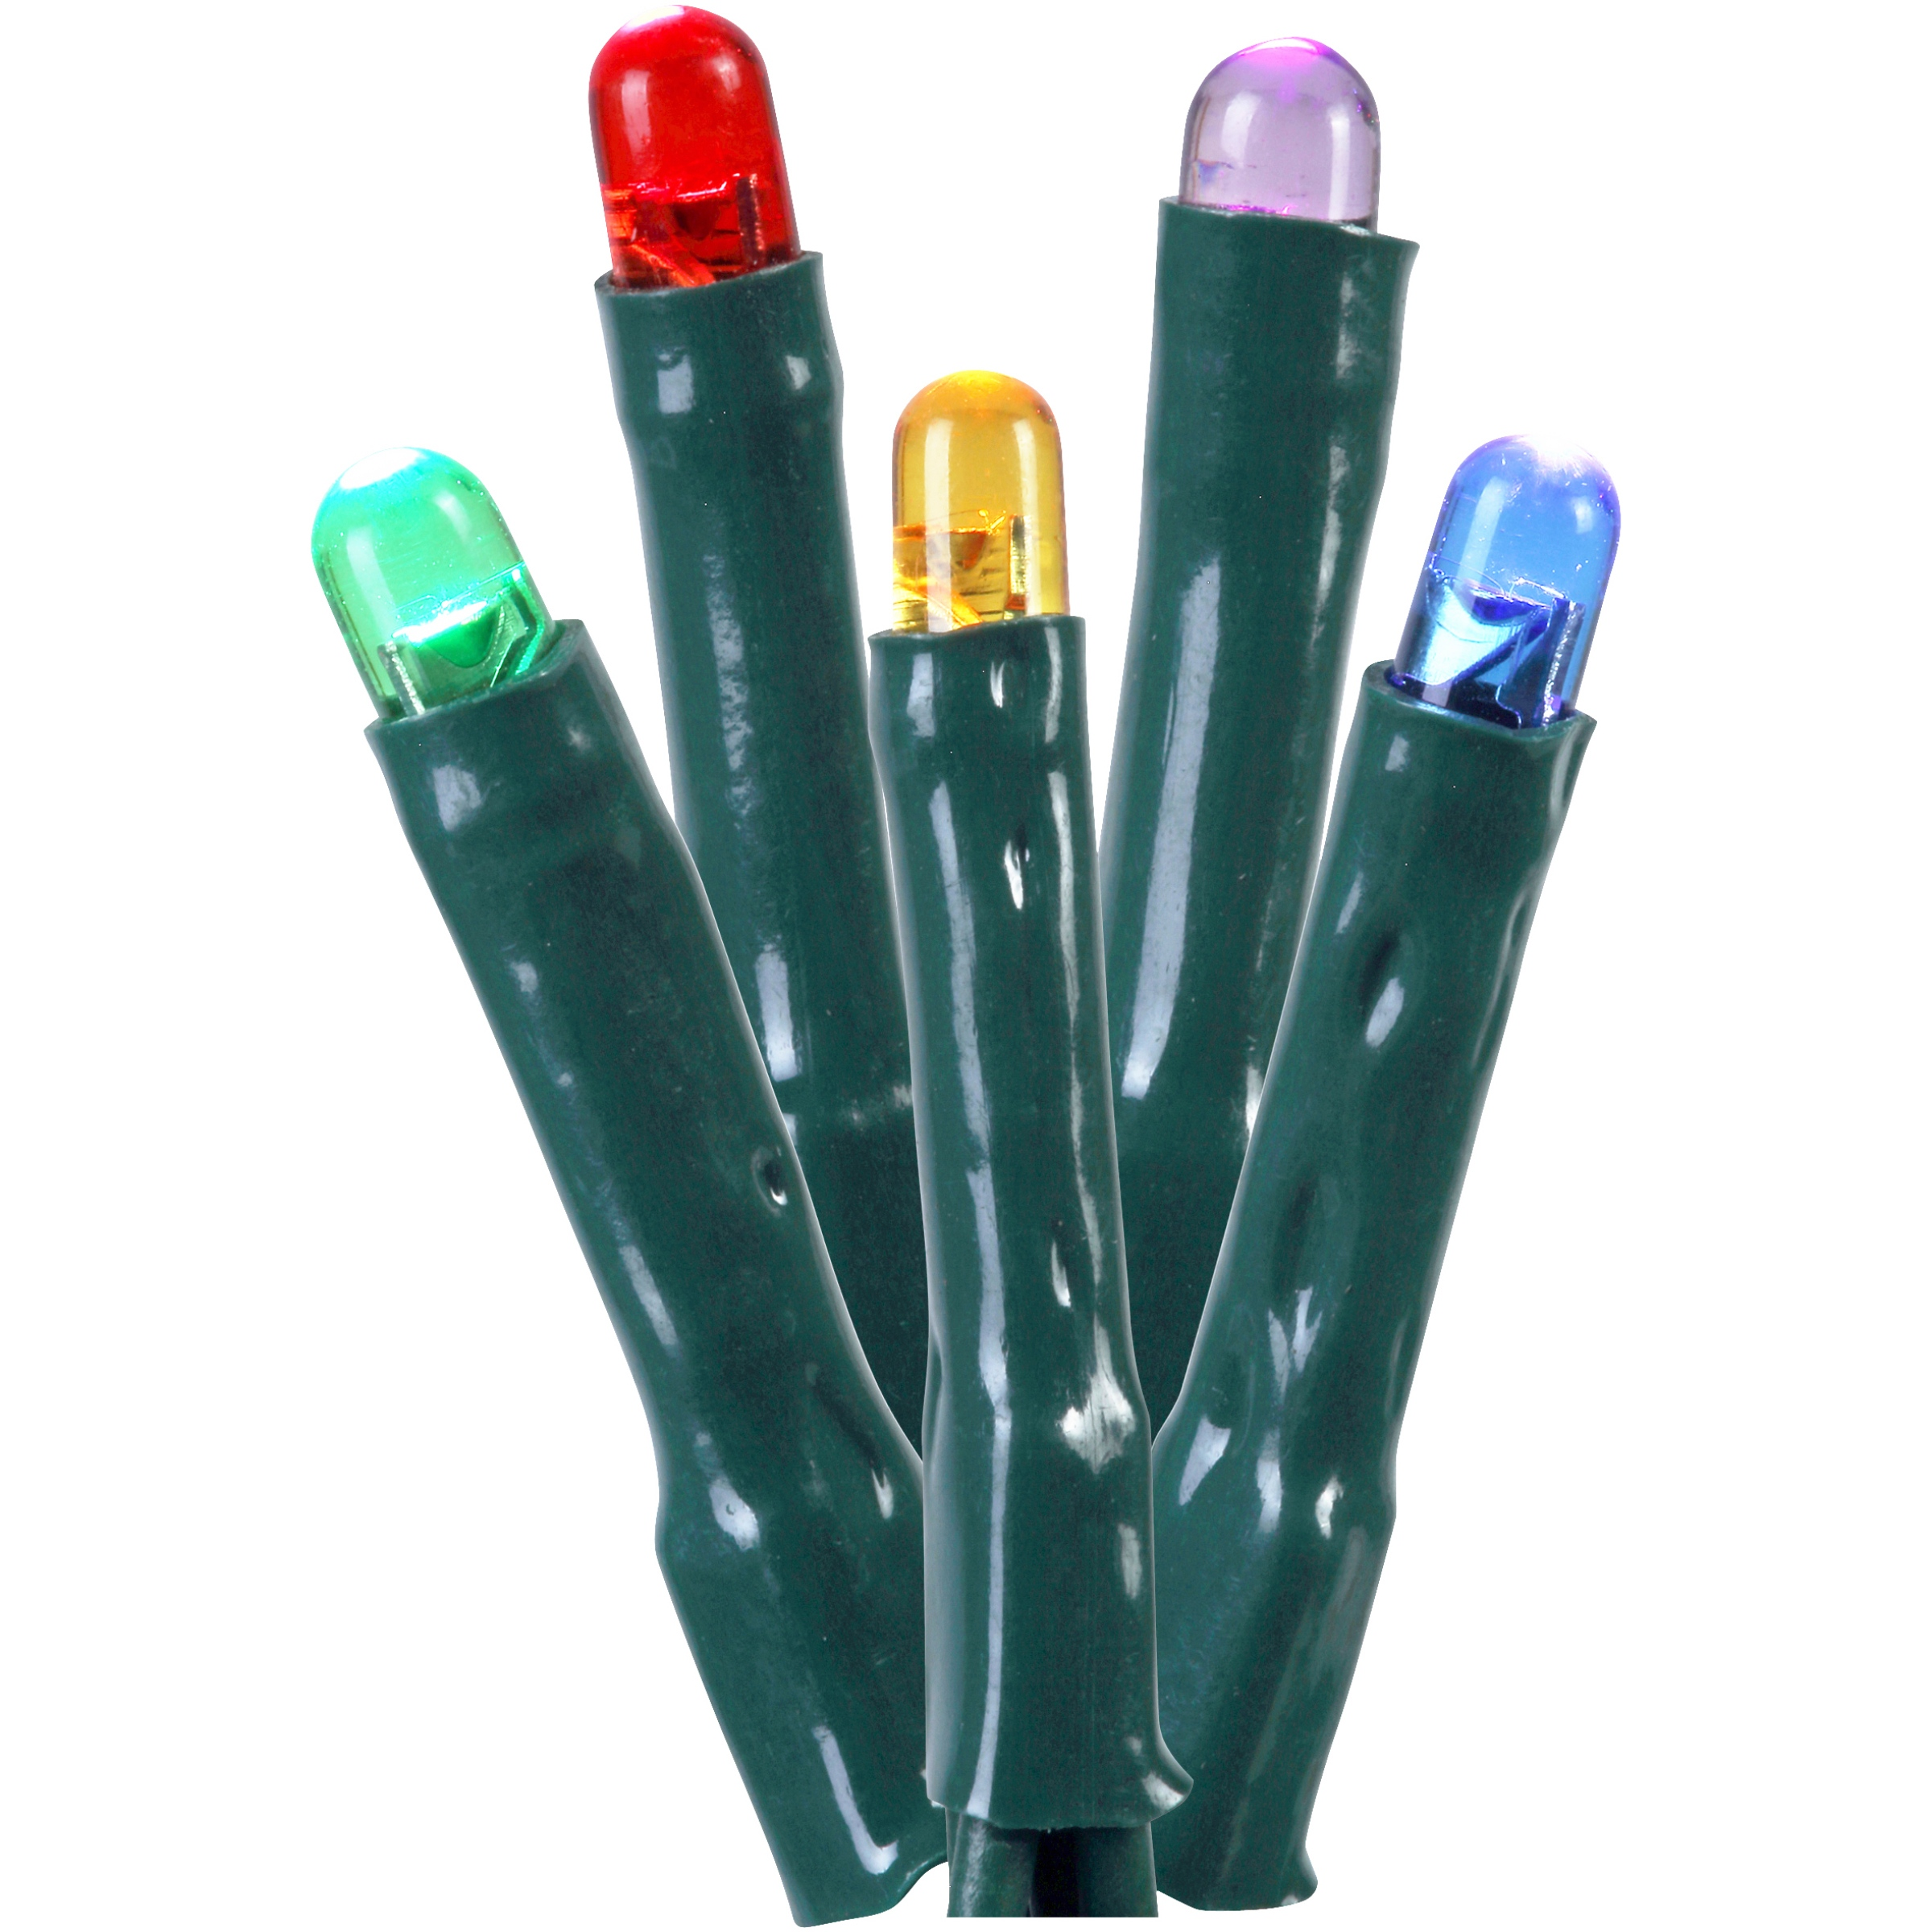 Holiday Time 150 8-Function Solar Power LED Micro Lights, Multicolor